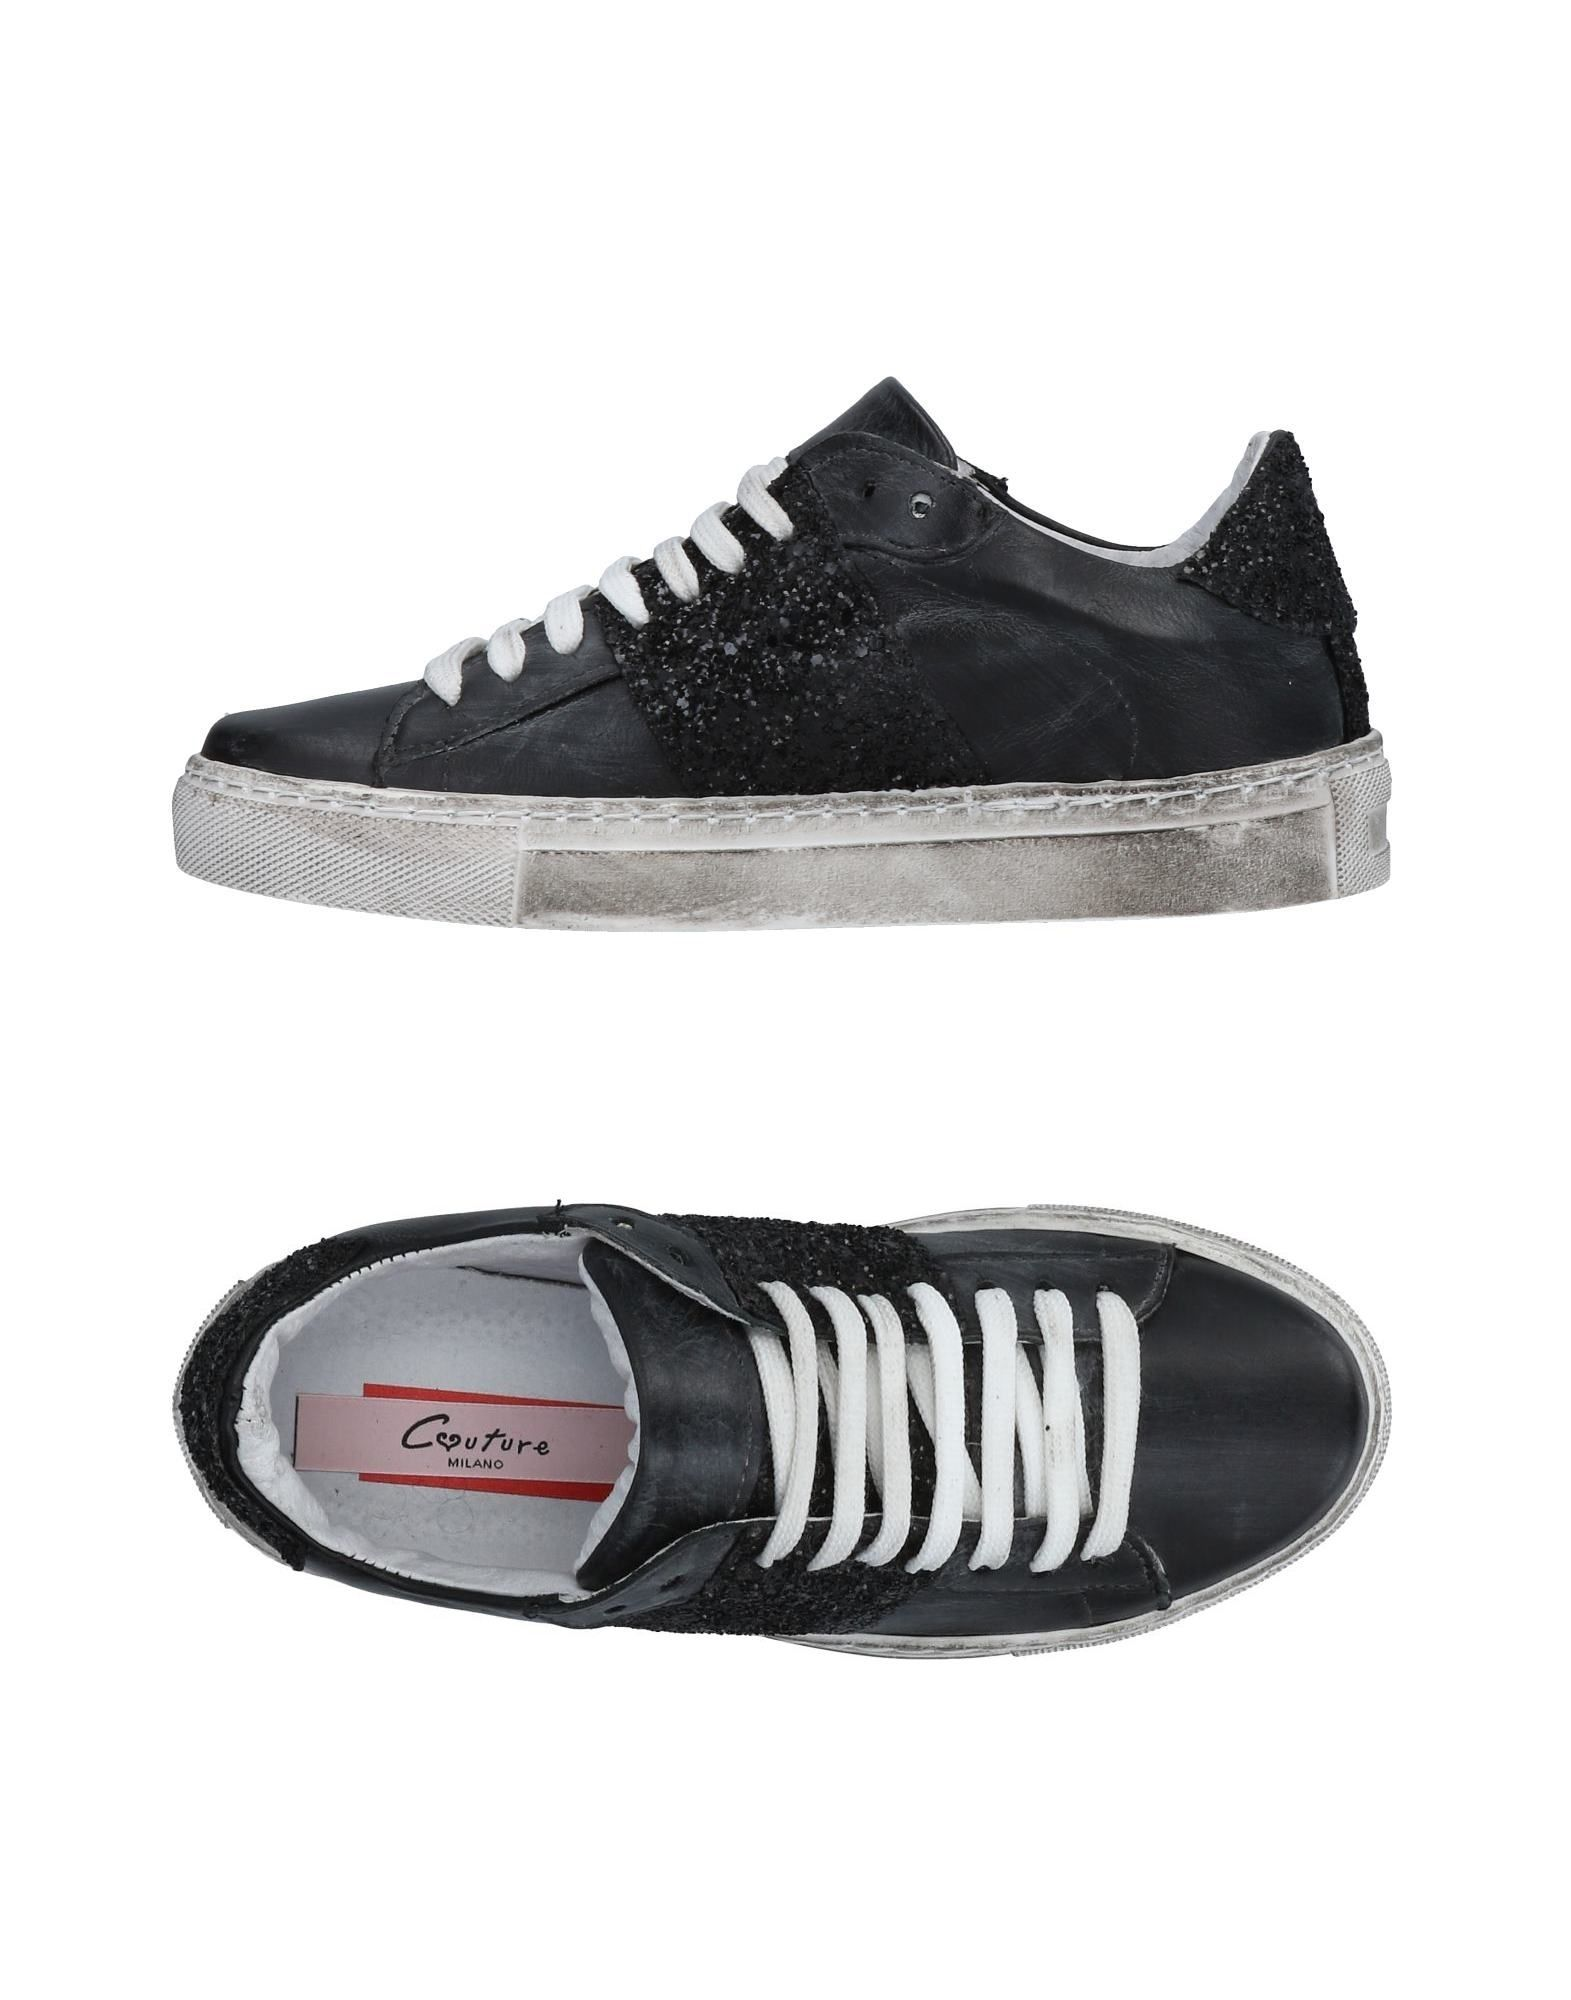 Couture on Sneakers - Women Couture Sneakers online on Couture  Australia - 11486449BM de0e9d